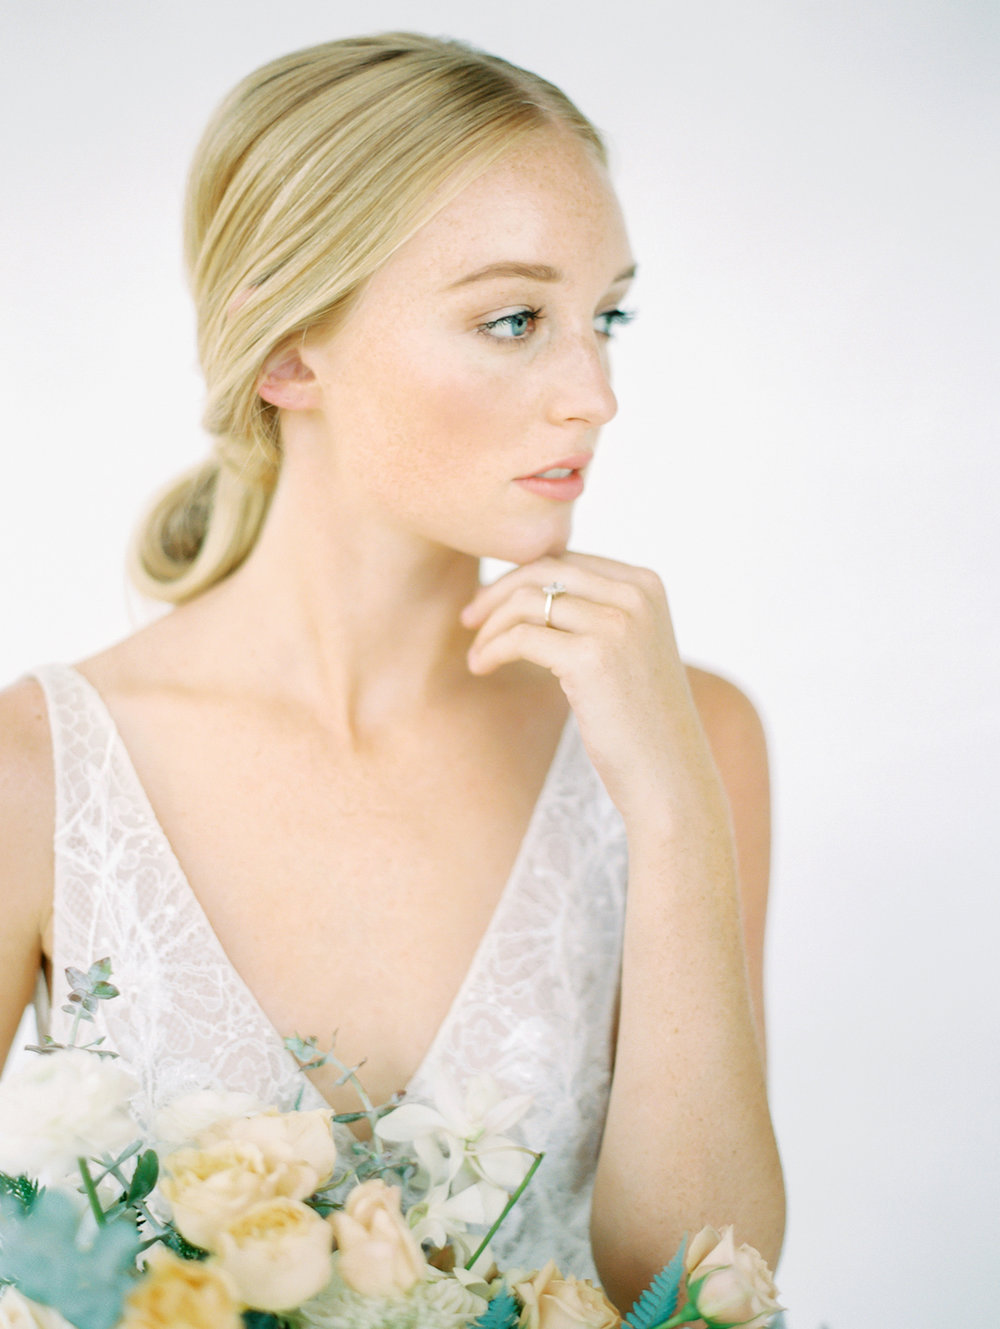 Natural bridal makeup and low bun | Studio 710 | Compass Floral | Wedding Florist in San Diego and Southern California | Dear Lovers Photography